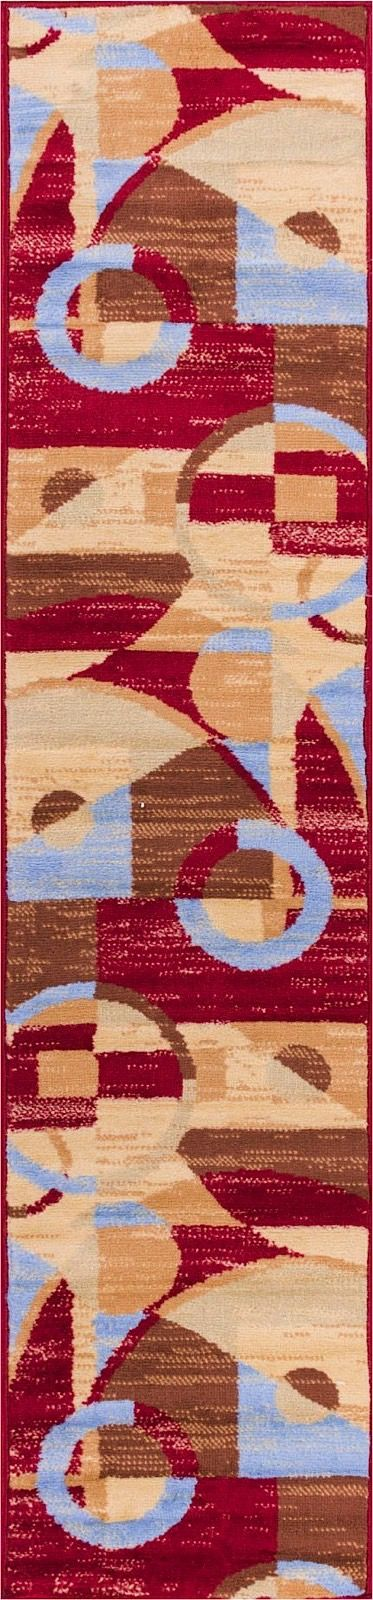 well woven miami riga circles-set of 3-1.8x2.6, 1.8x5, 4.5x6.5 contemporary area rug collection